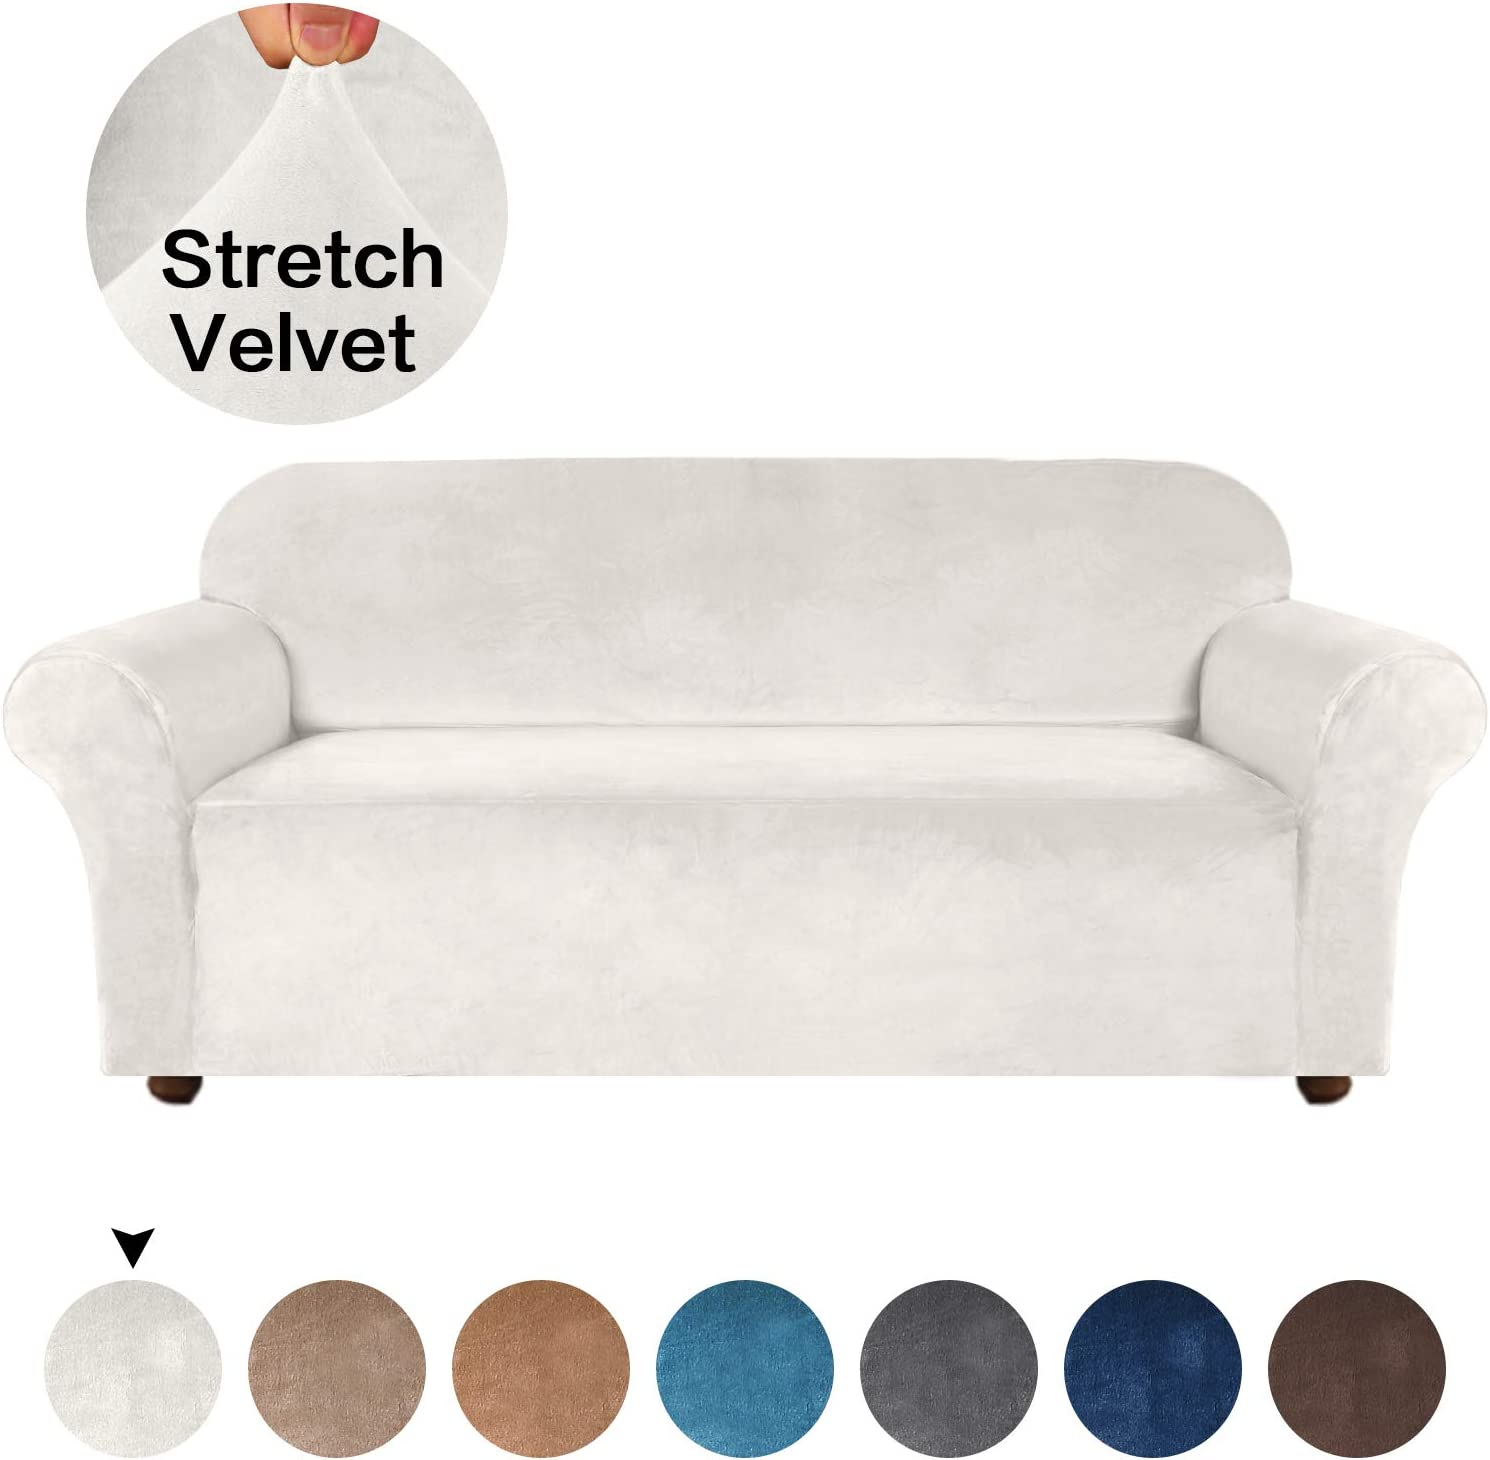 Turquoize Velvet Sofa Slipcover High Spandex Sofa Cover/Lounge Covers/Couch Covers for 3 Cushion Couch Ivory Sofa Protector for Dogs High Stretch Furniture Protector Cover for Sofas (Sofa, Ivory)